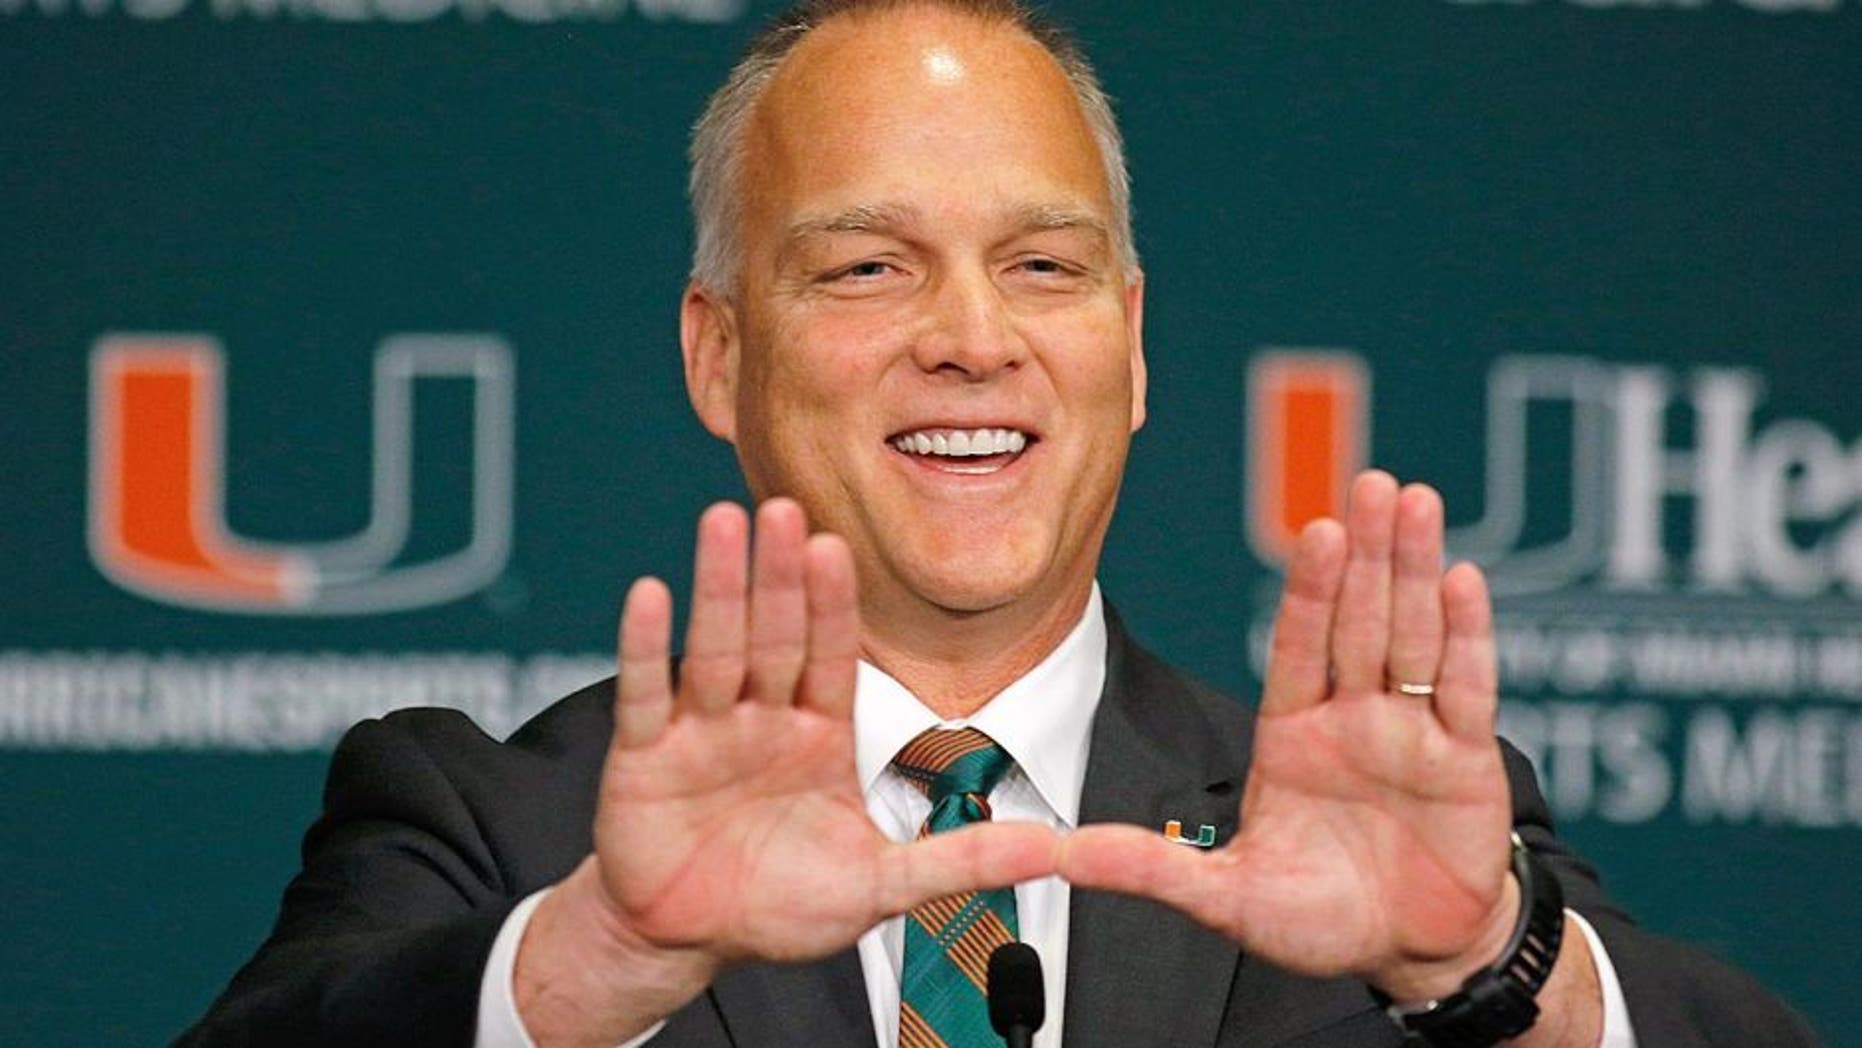 CORAL GABLES, FL - DECEMBER 04: New University of Miami Hurricanes head coach Mark Richt makes the 'U' sign after he was introduced at a press conference at the school on December 4, 2015 in Coral Gables, Florida. (Photo by Joe Skipper/Getty Images)